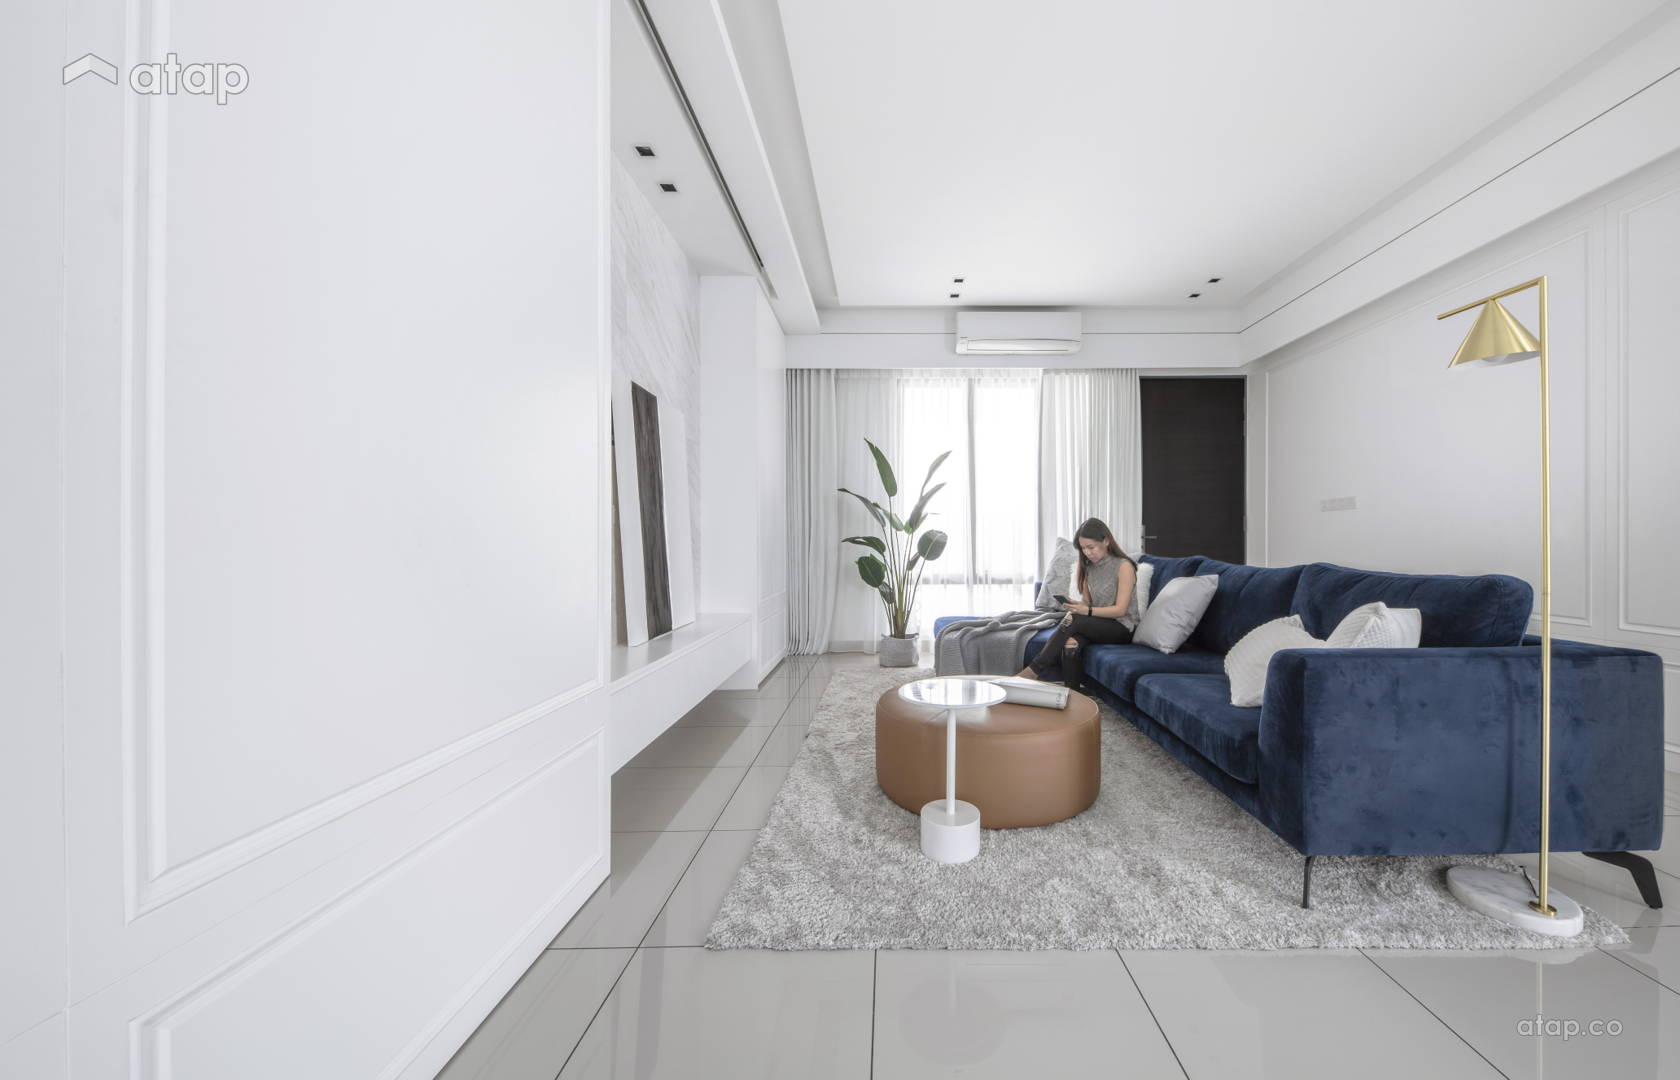 Classic Modern Living Room @ Illusion of monochrome - Town house, Sepang